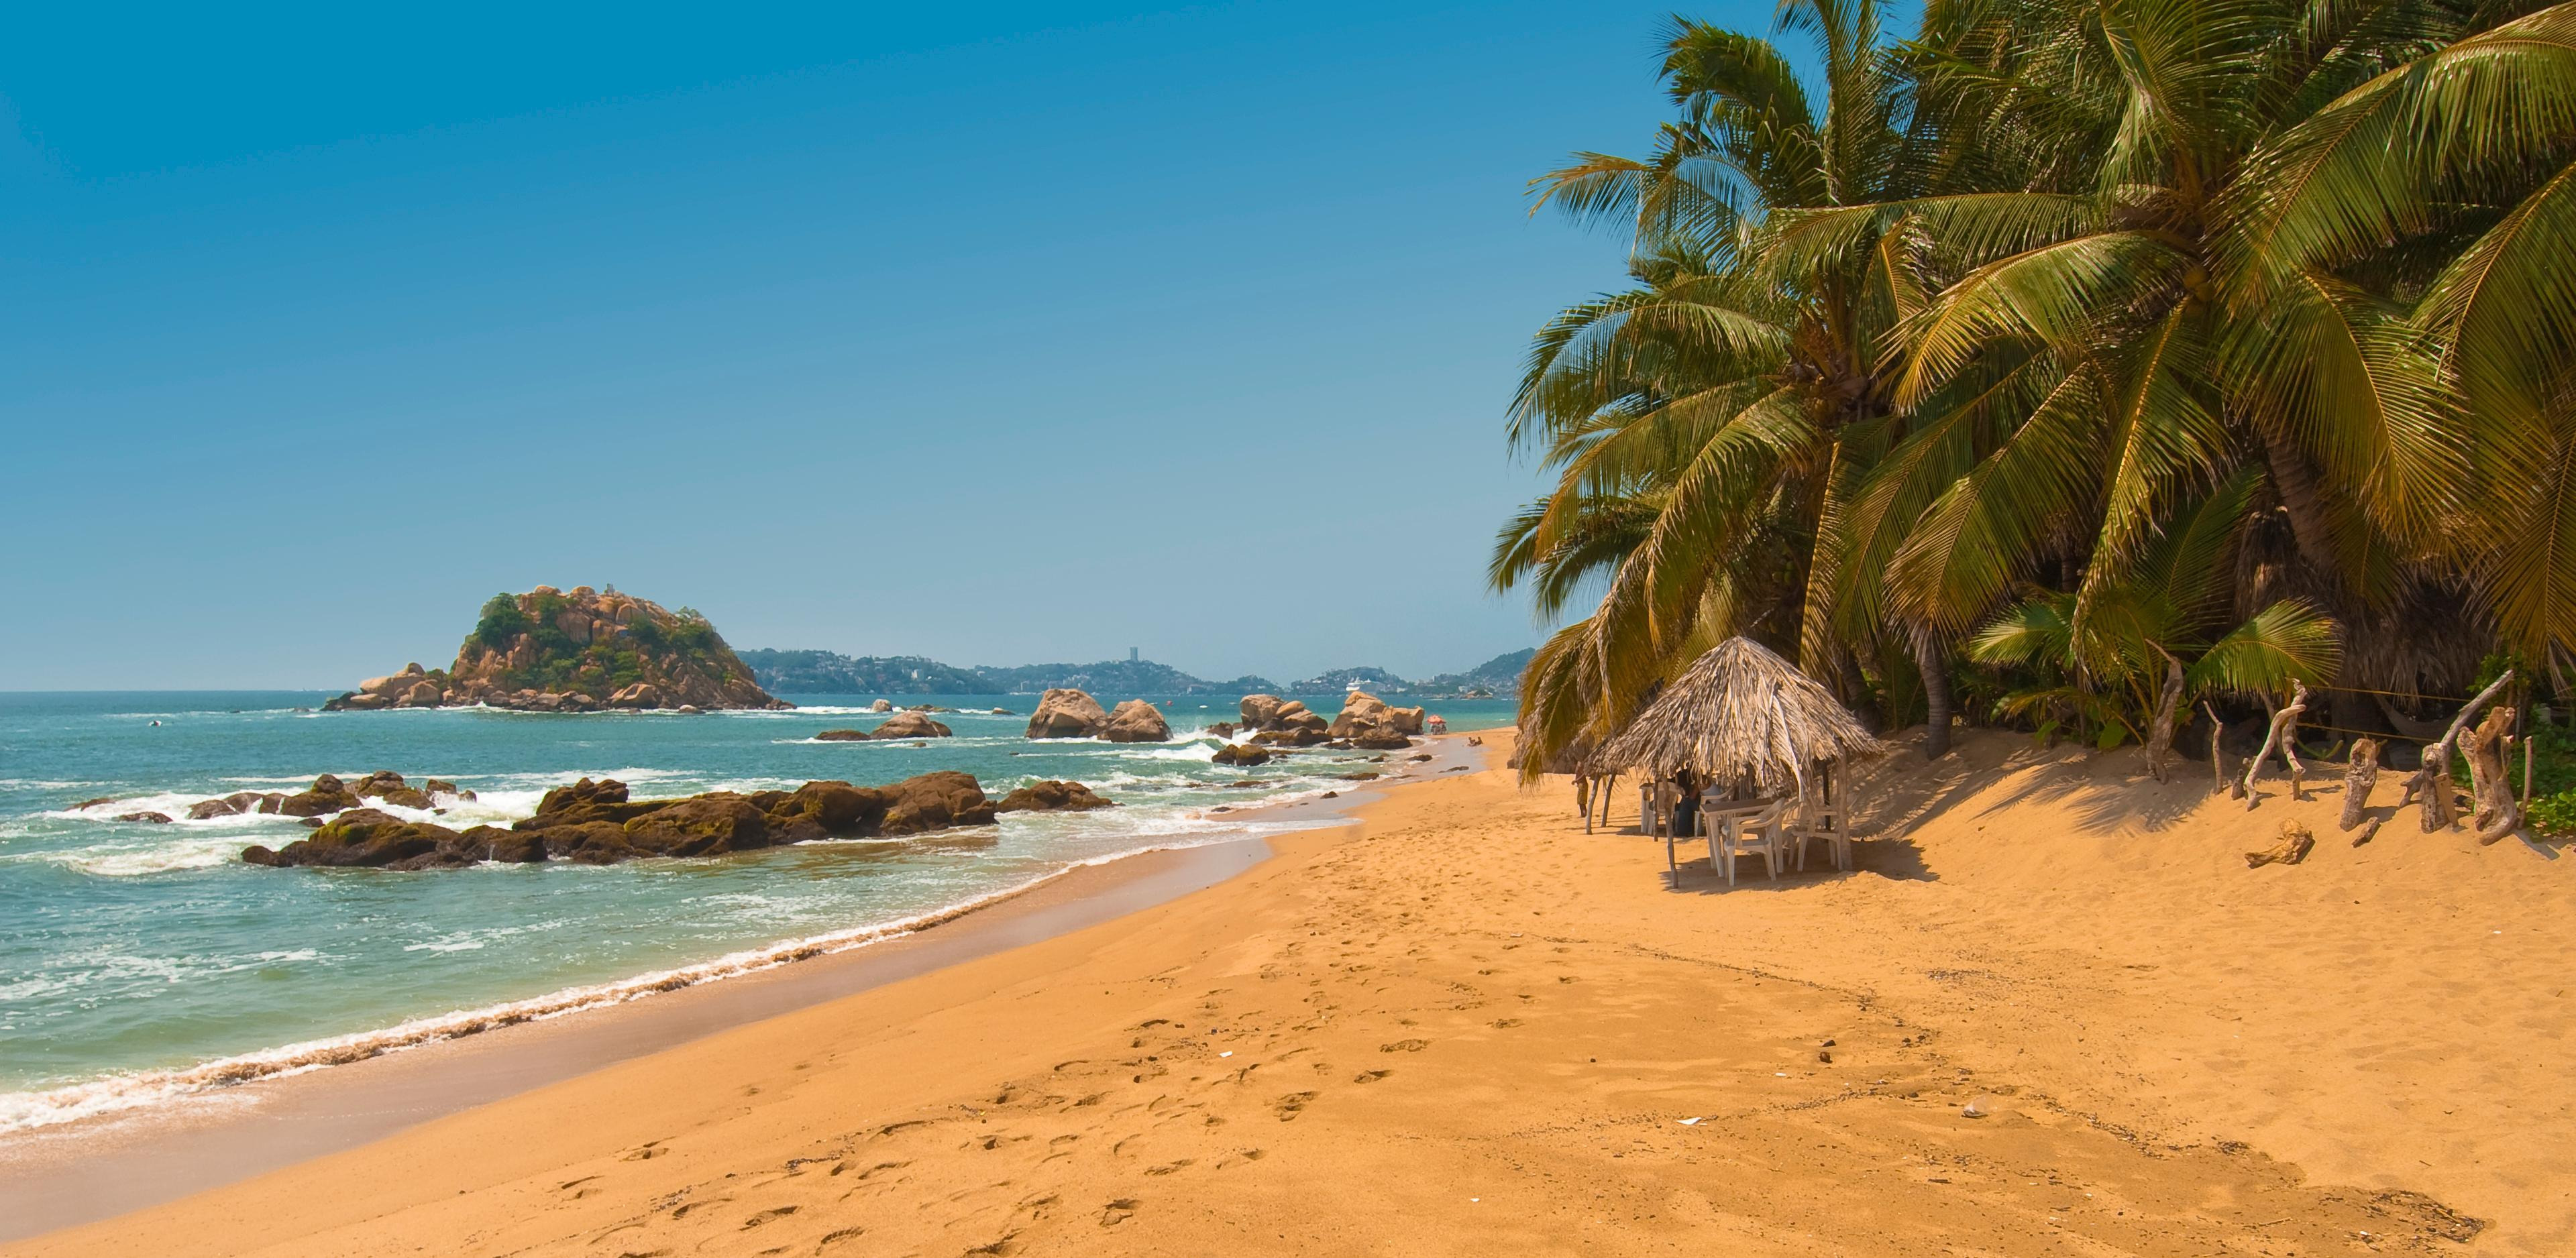 Top Beaches in Acapulco